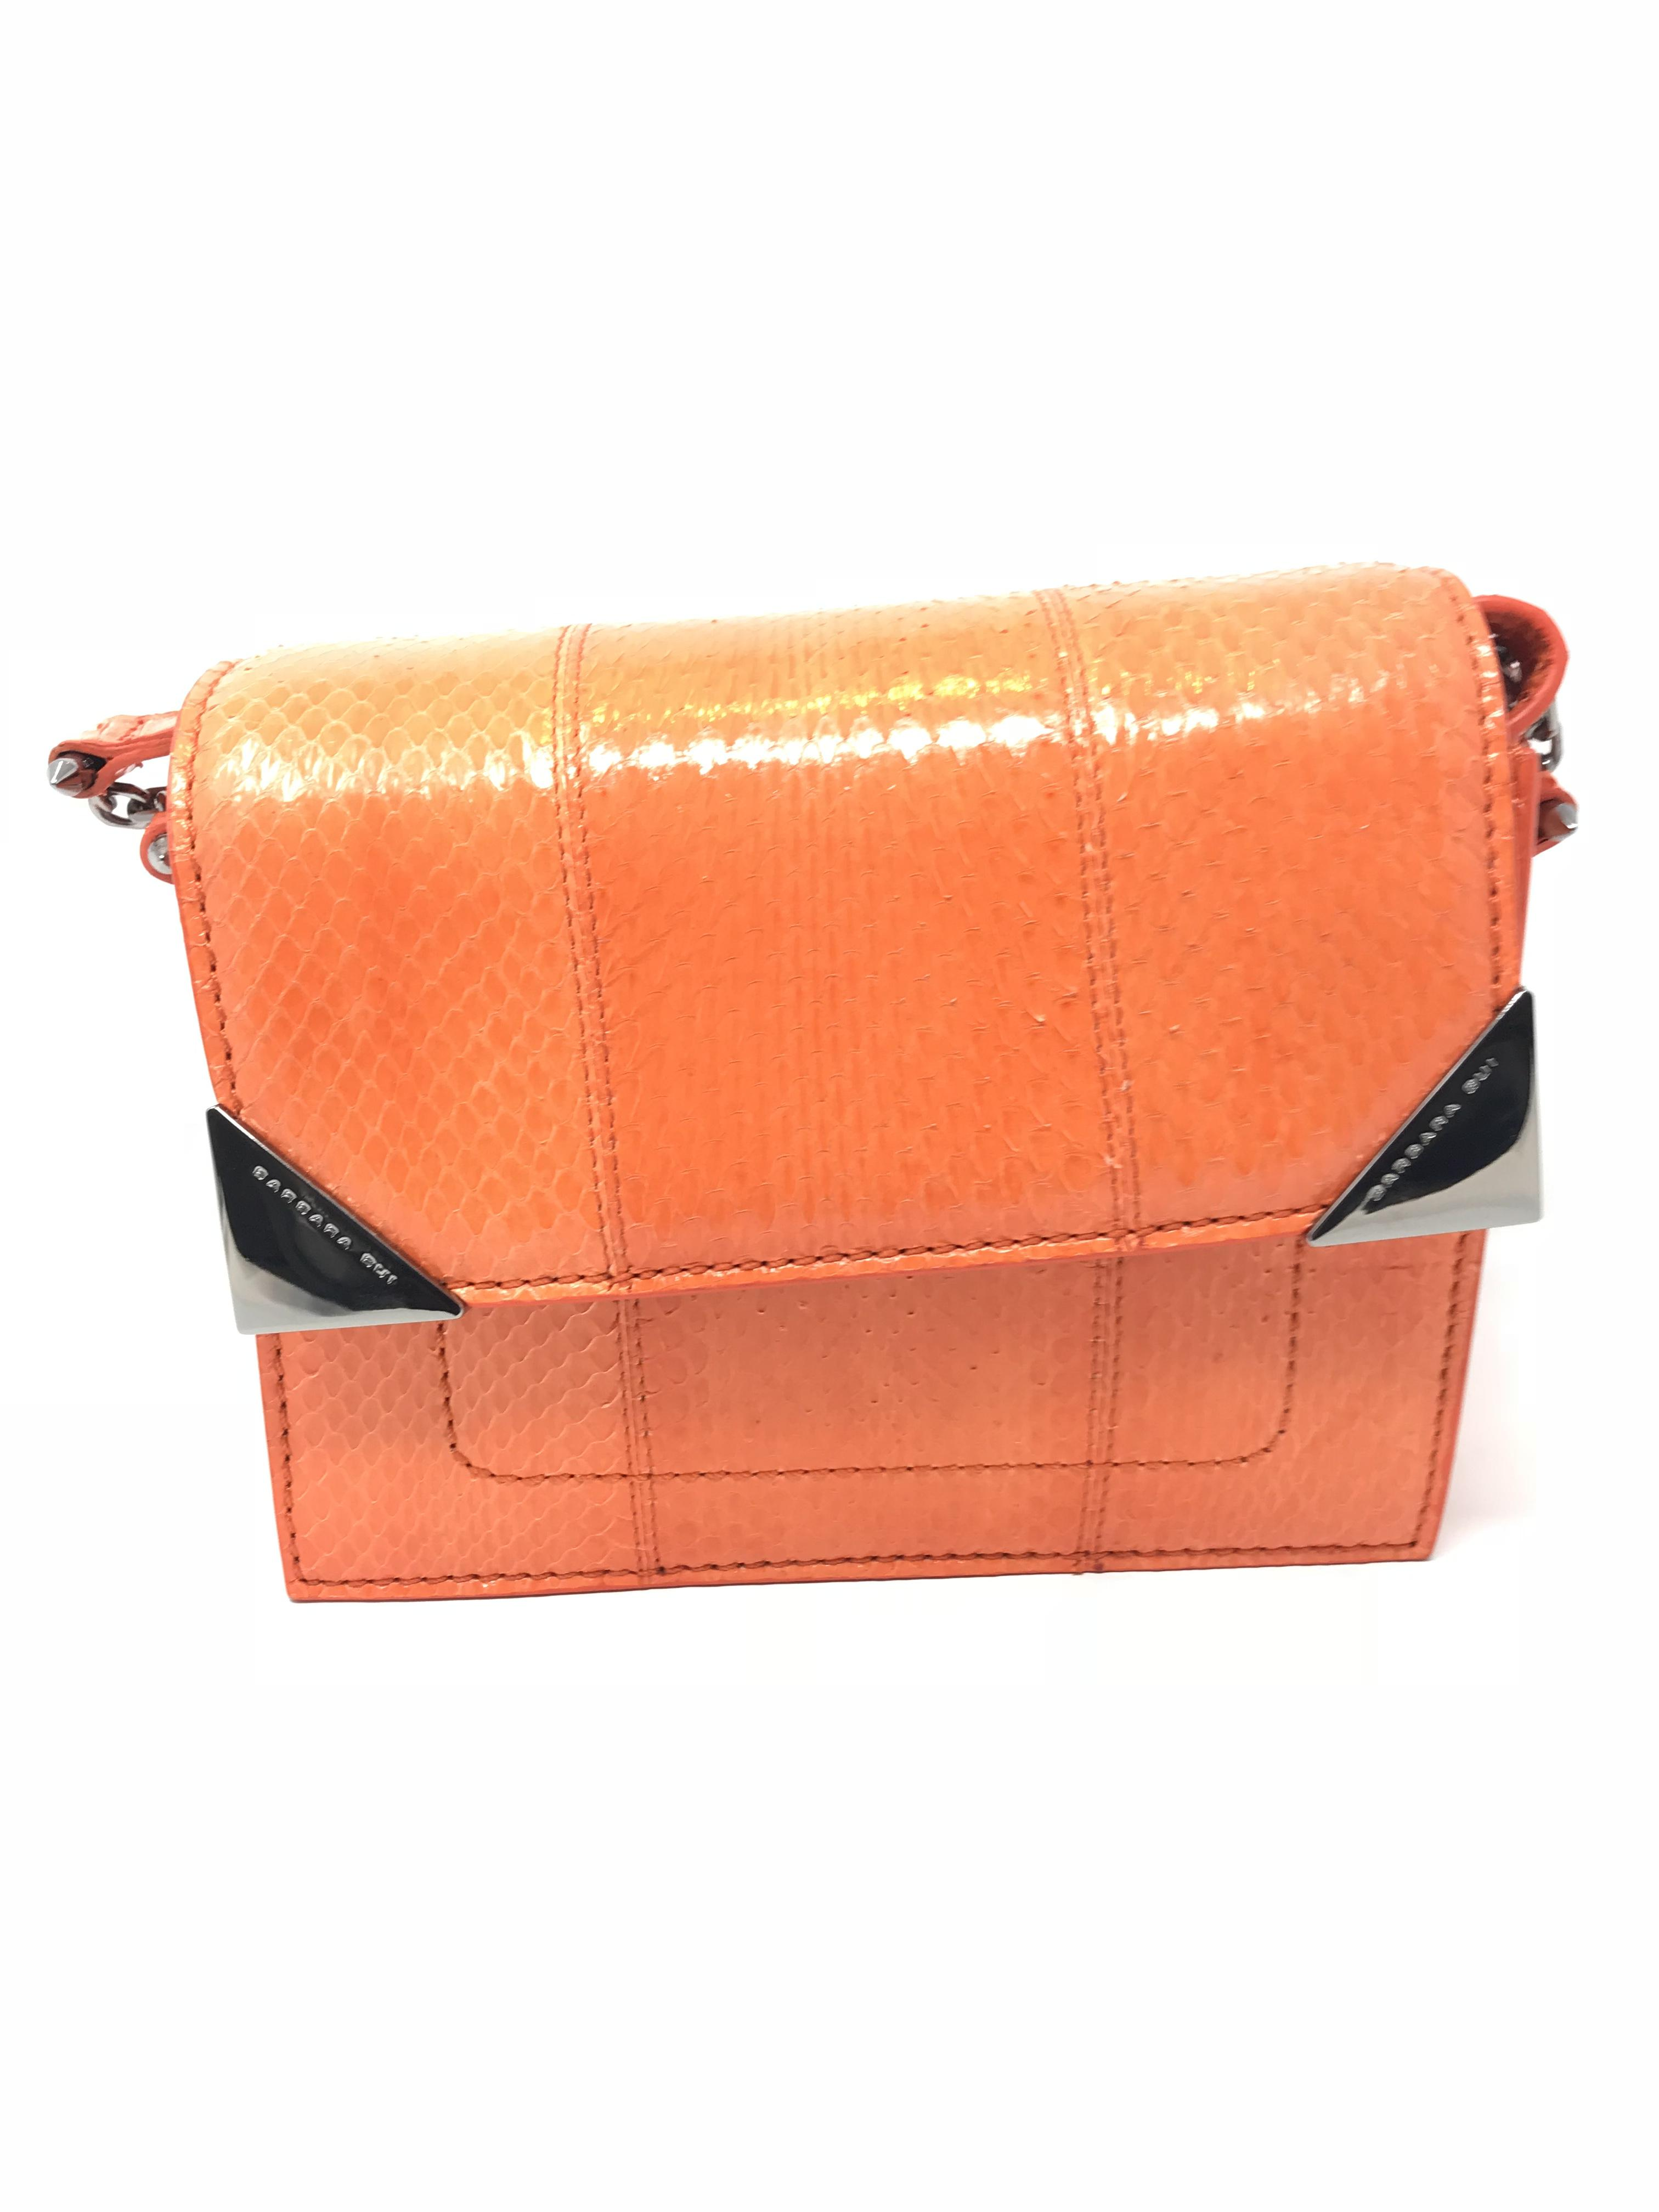 Barbara Bui Purses, Handbags Price: $367.99